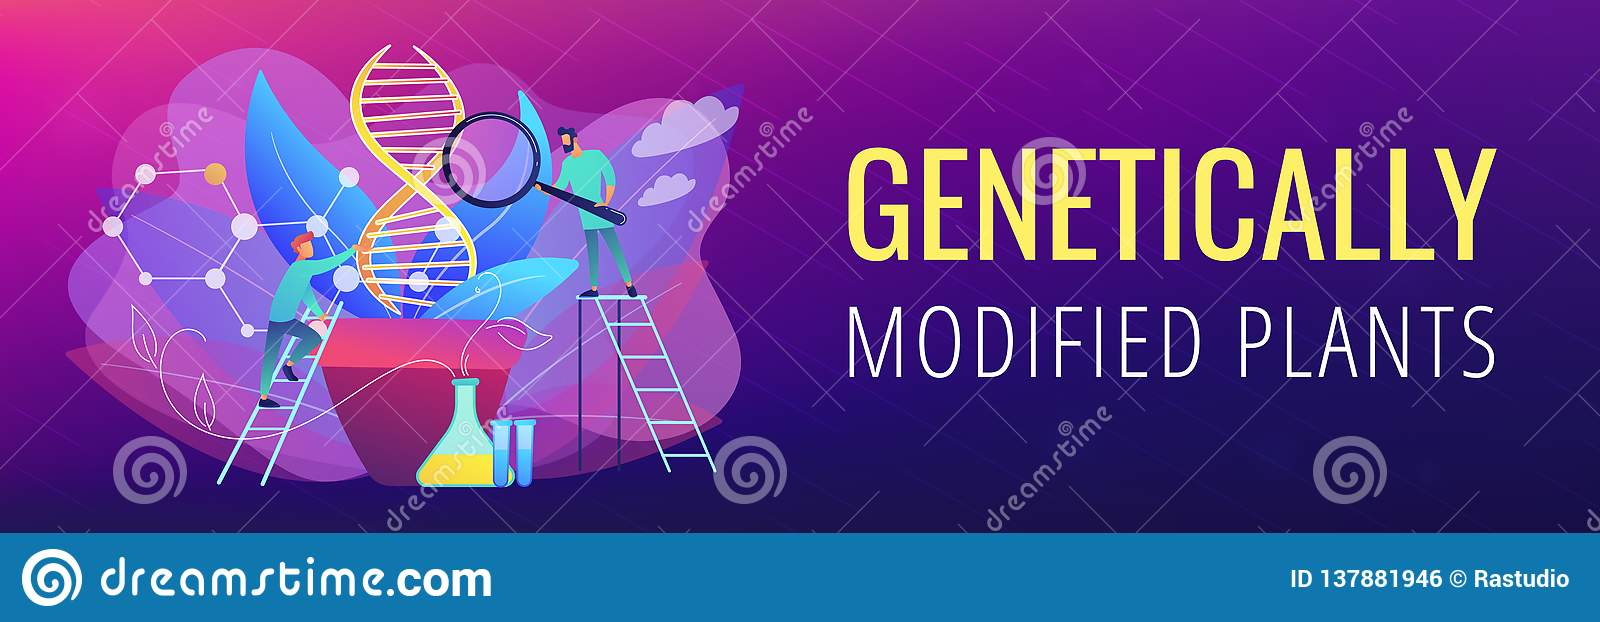 Genetically modified plants concept banner header.